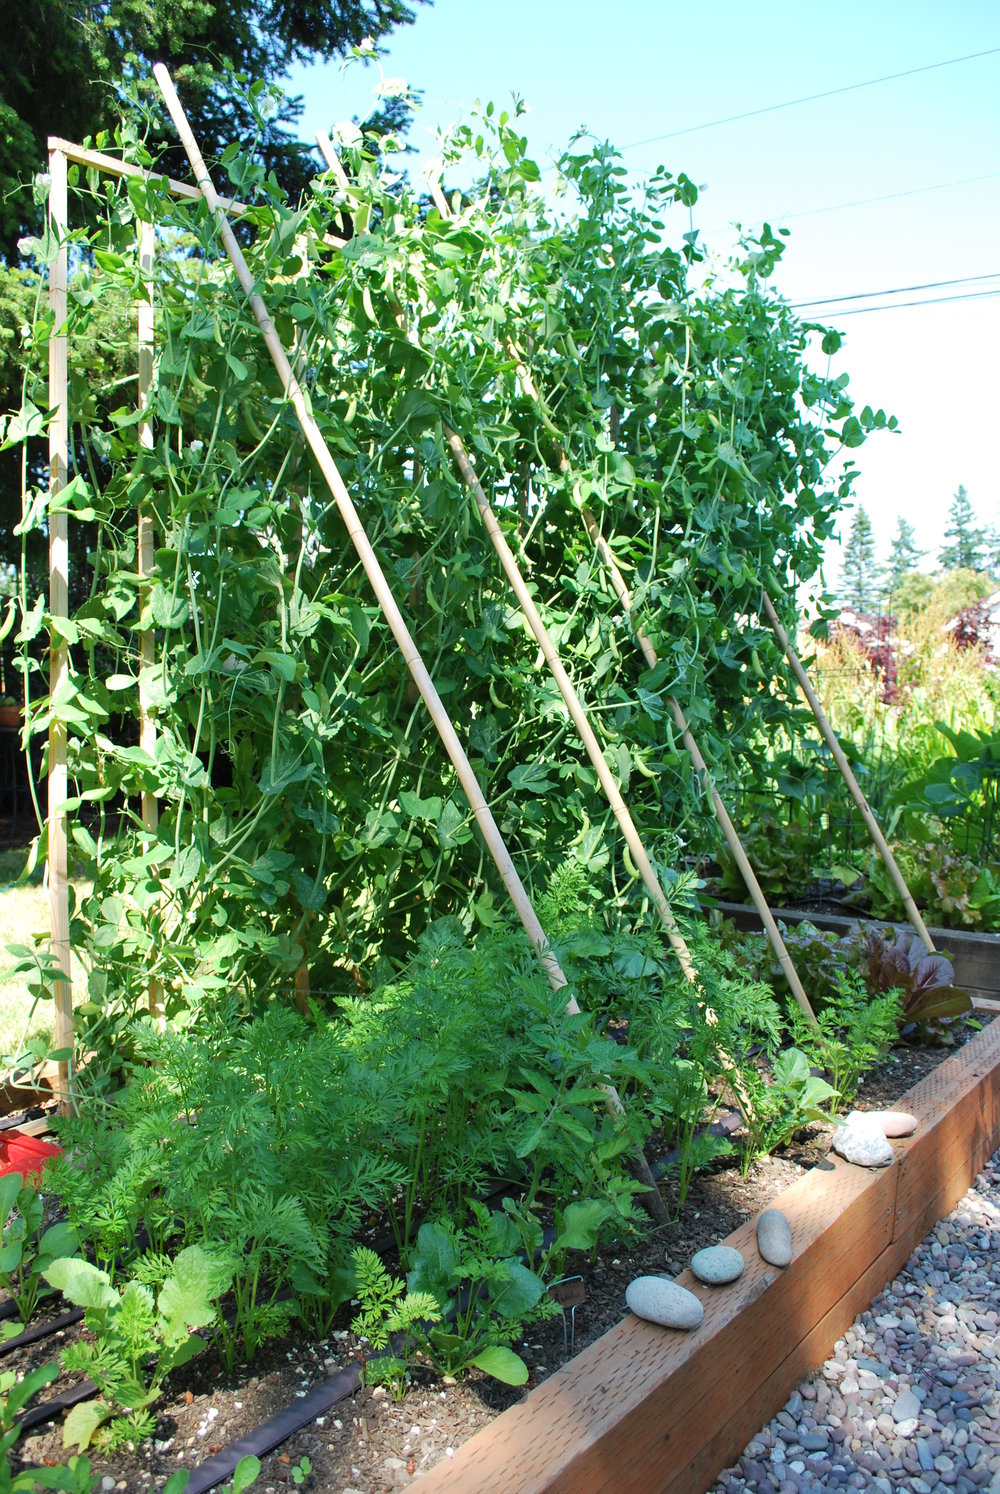 Peas on a trellis with carrots and radishes below. They were such strong growers, they nearly pulled the trellis down!